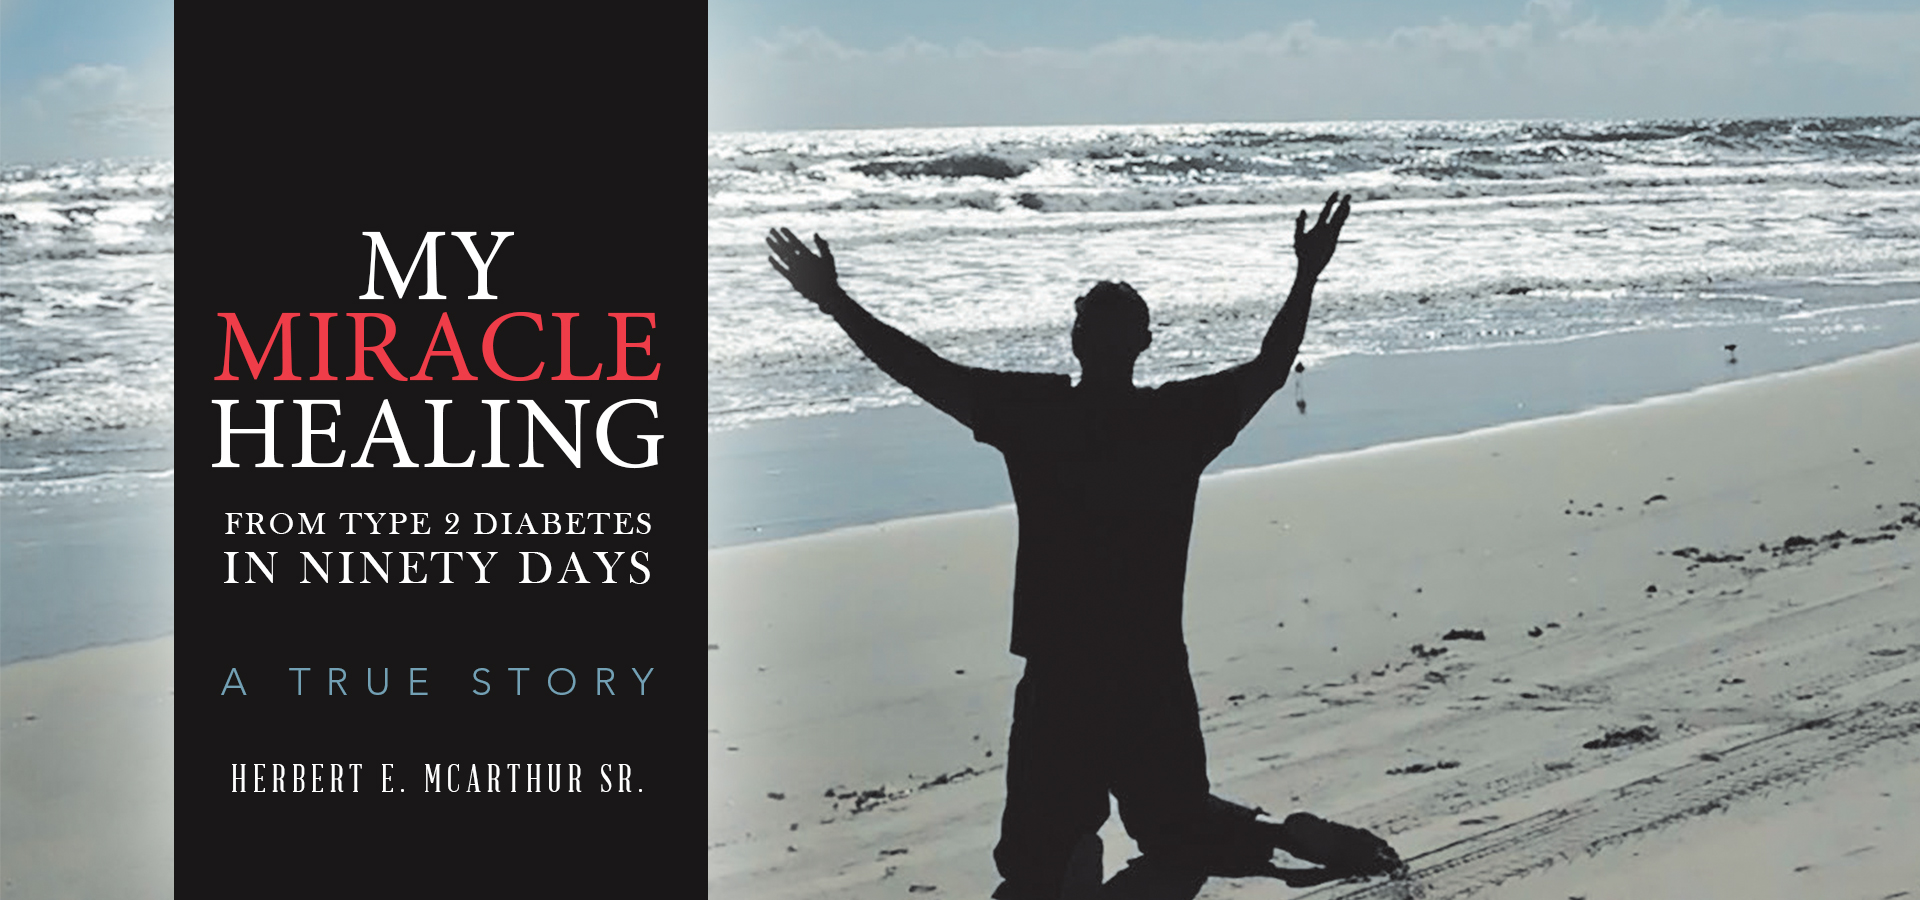 My Miracle Healing from Type 2 Diabetes in Ninety Days